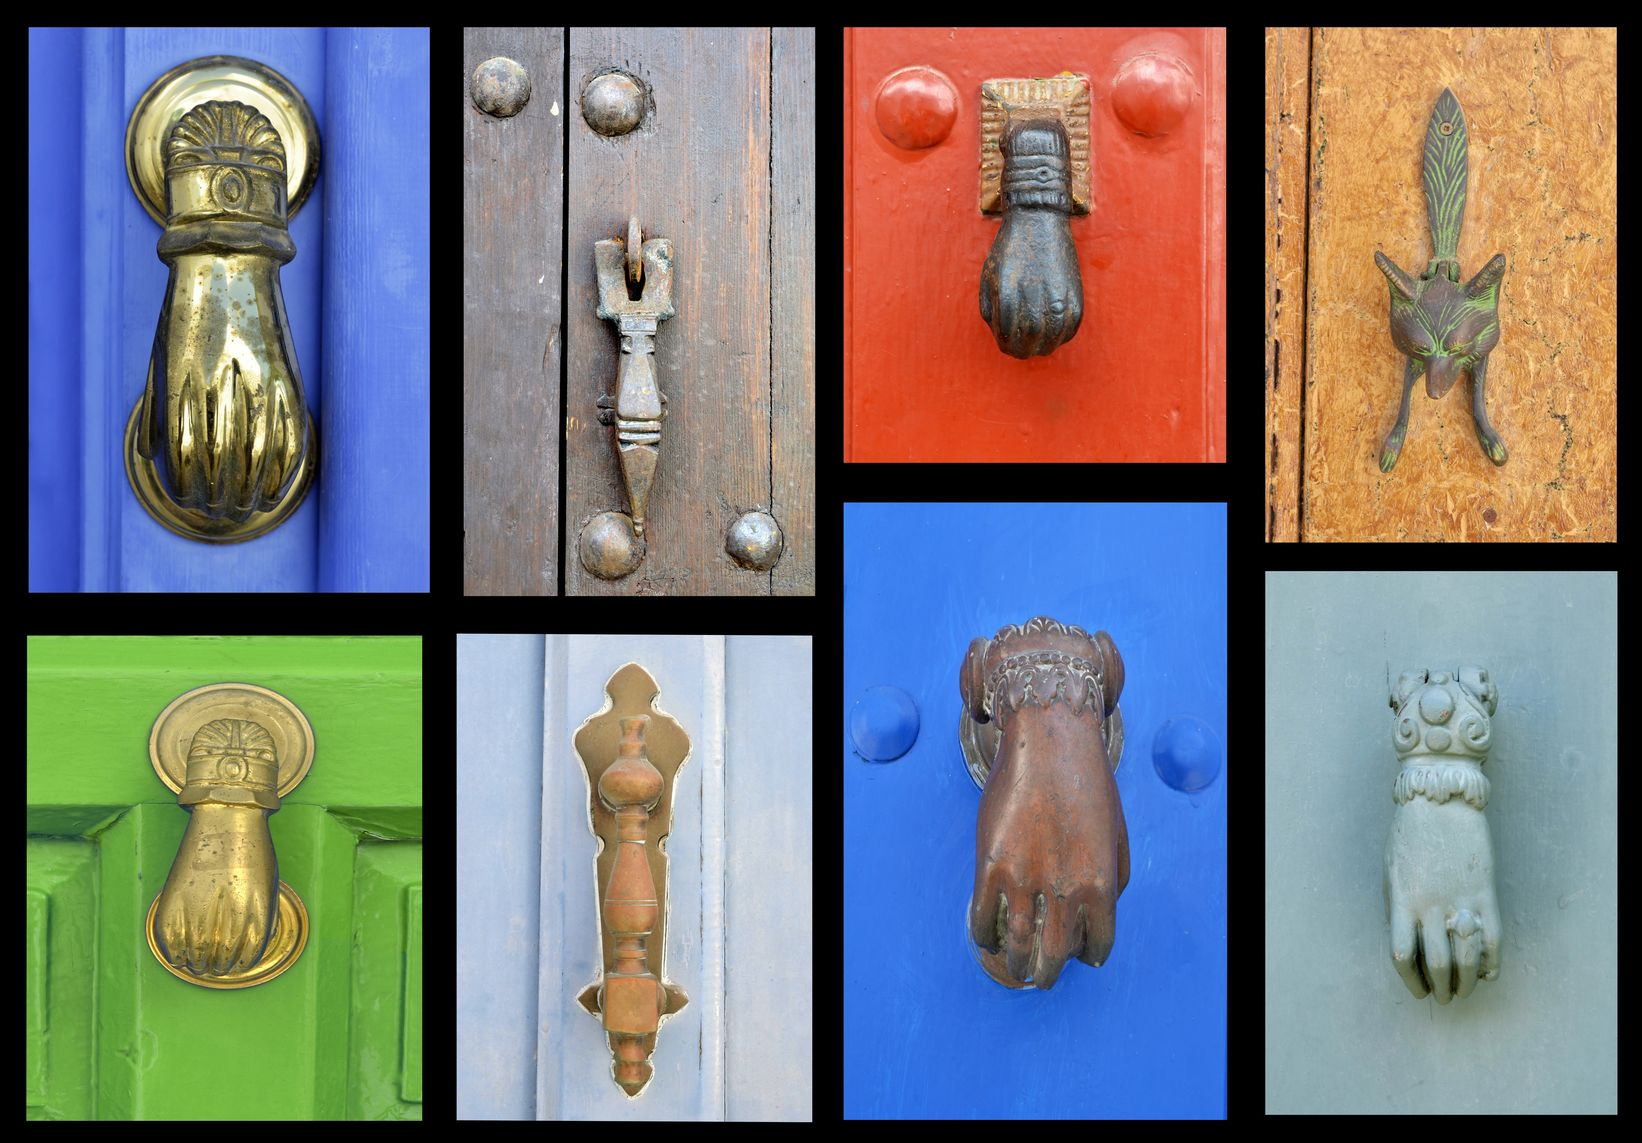 vintage door knockers